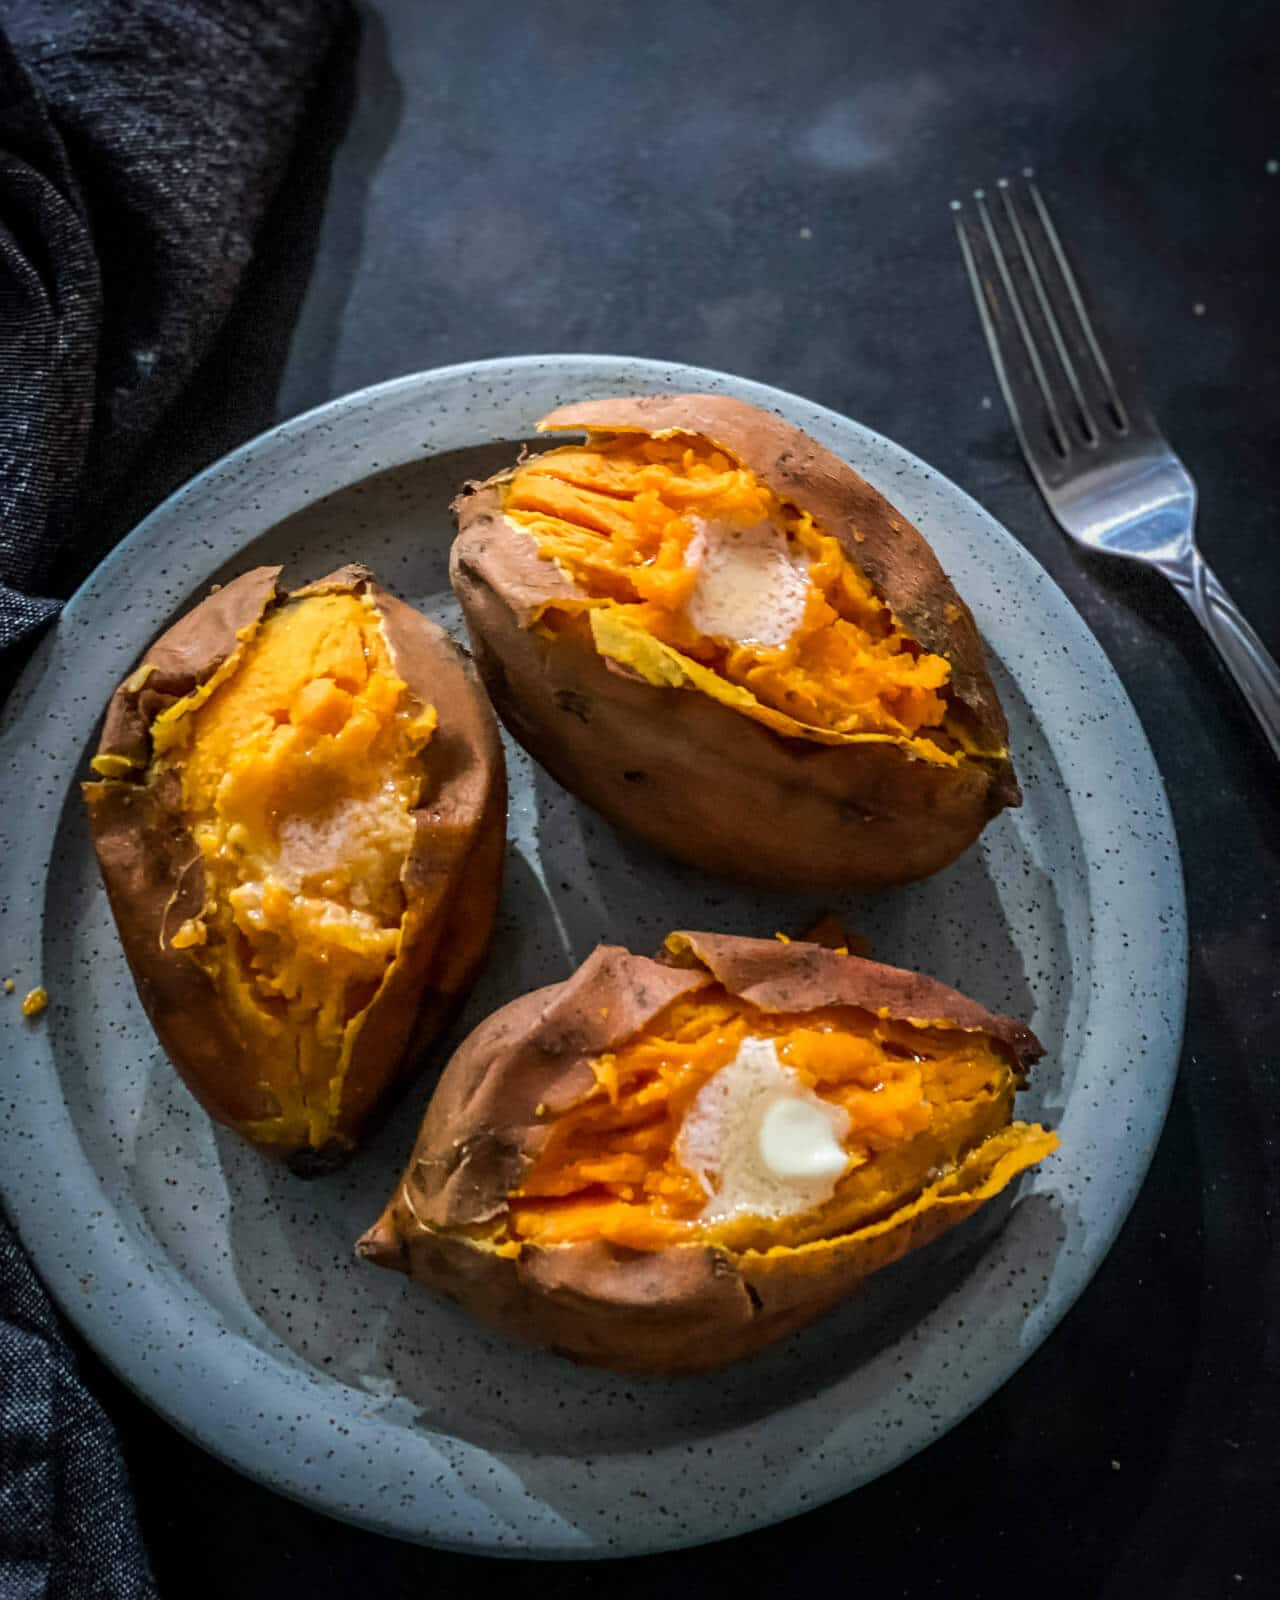 3 sweet potatoes that are split open placed in a grey plate topped with butter